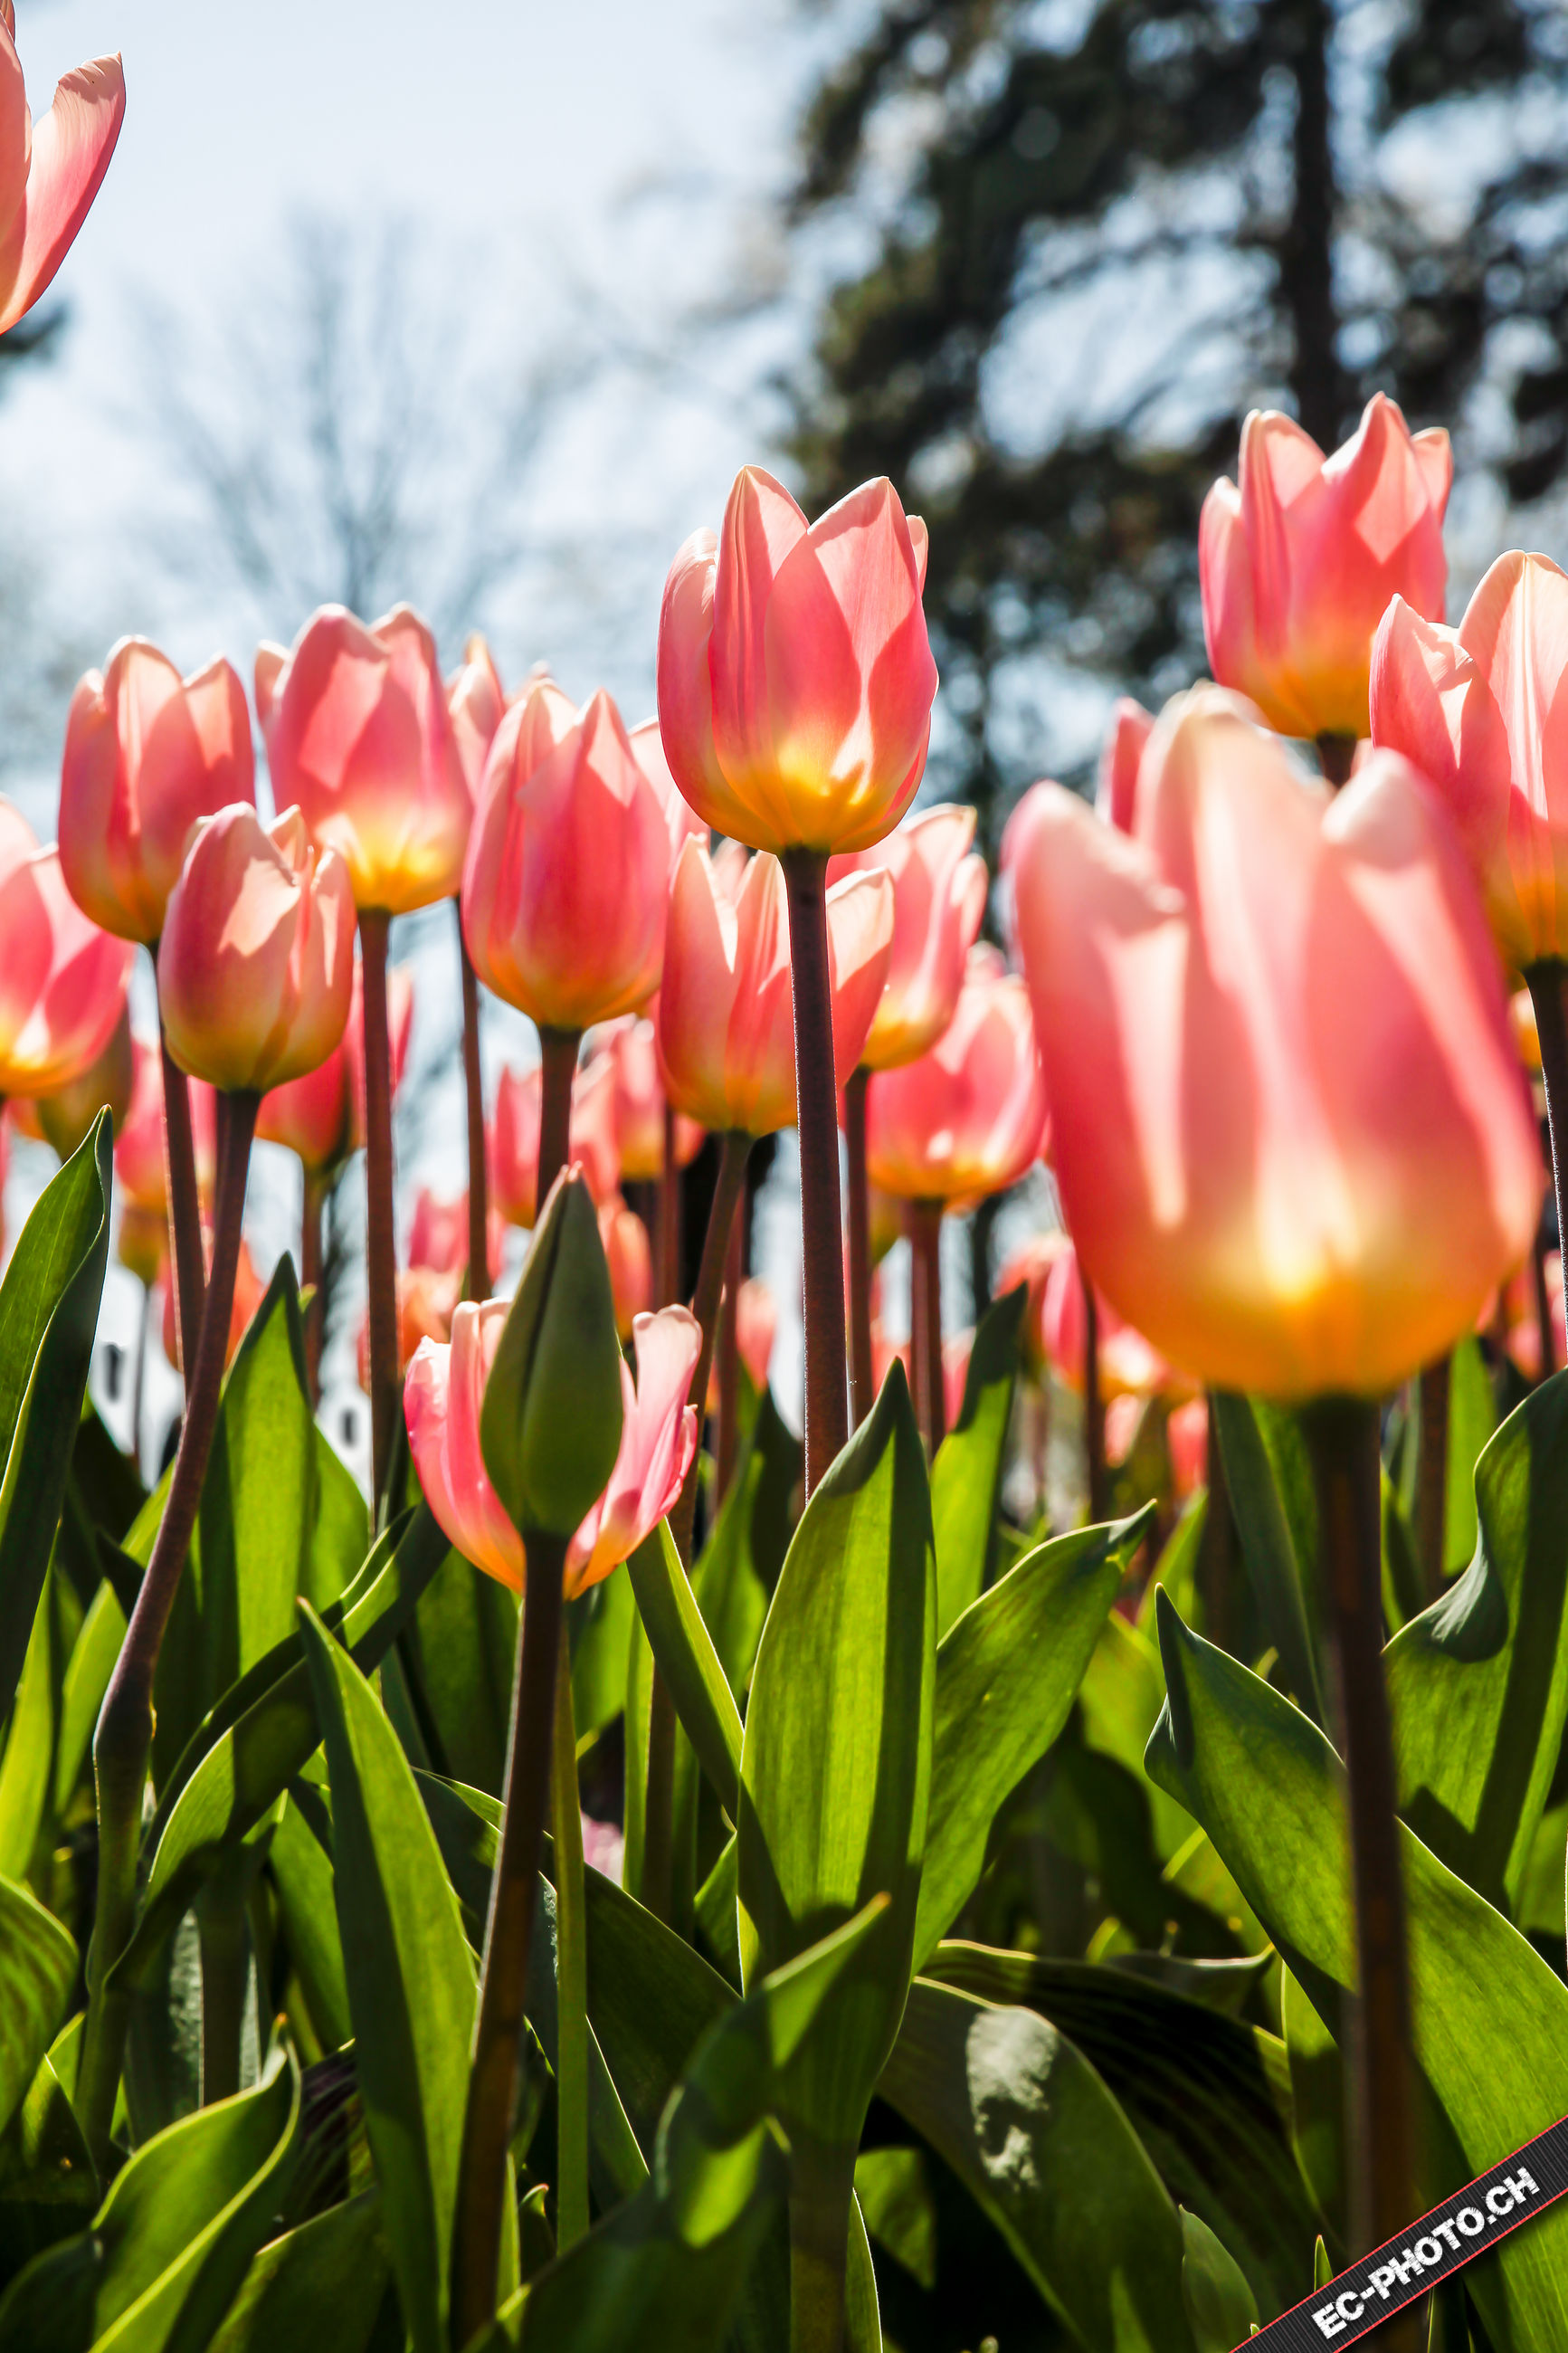 flower, petal, freshness, growth, tulip, fragility, flower head, beauty in nature, blooming, plant, nature, red, focus on foreground, close-up, stem, leaf, park - man made space, in bloom, field, outdoors